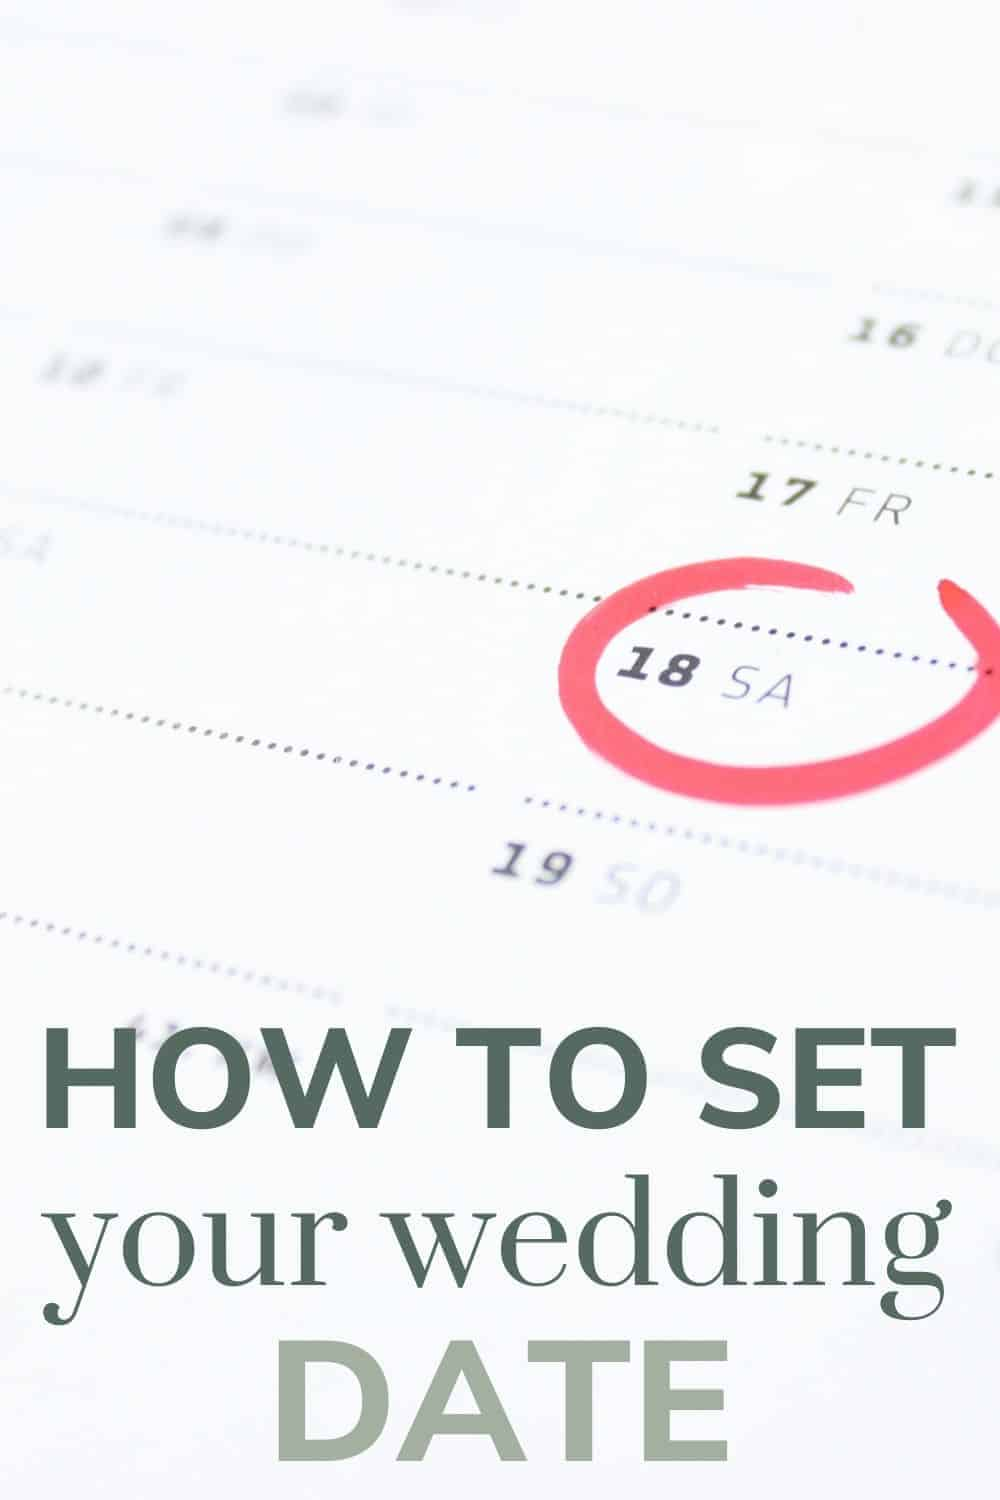 Shows a calendar with a red circle on it with a text overlay that says how to set your wedding date